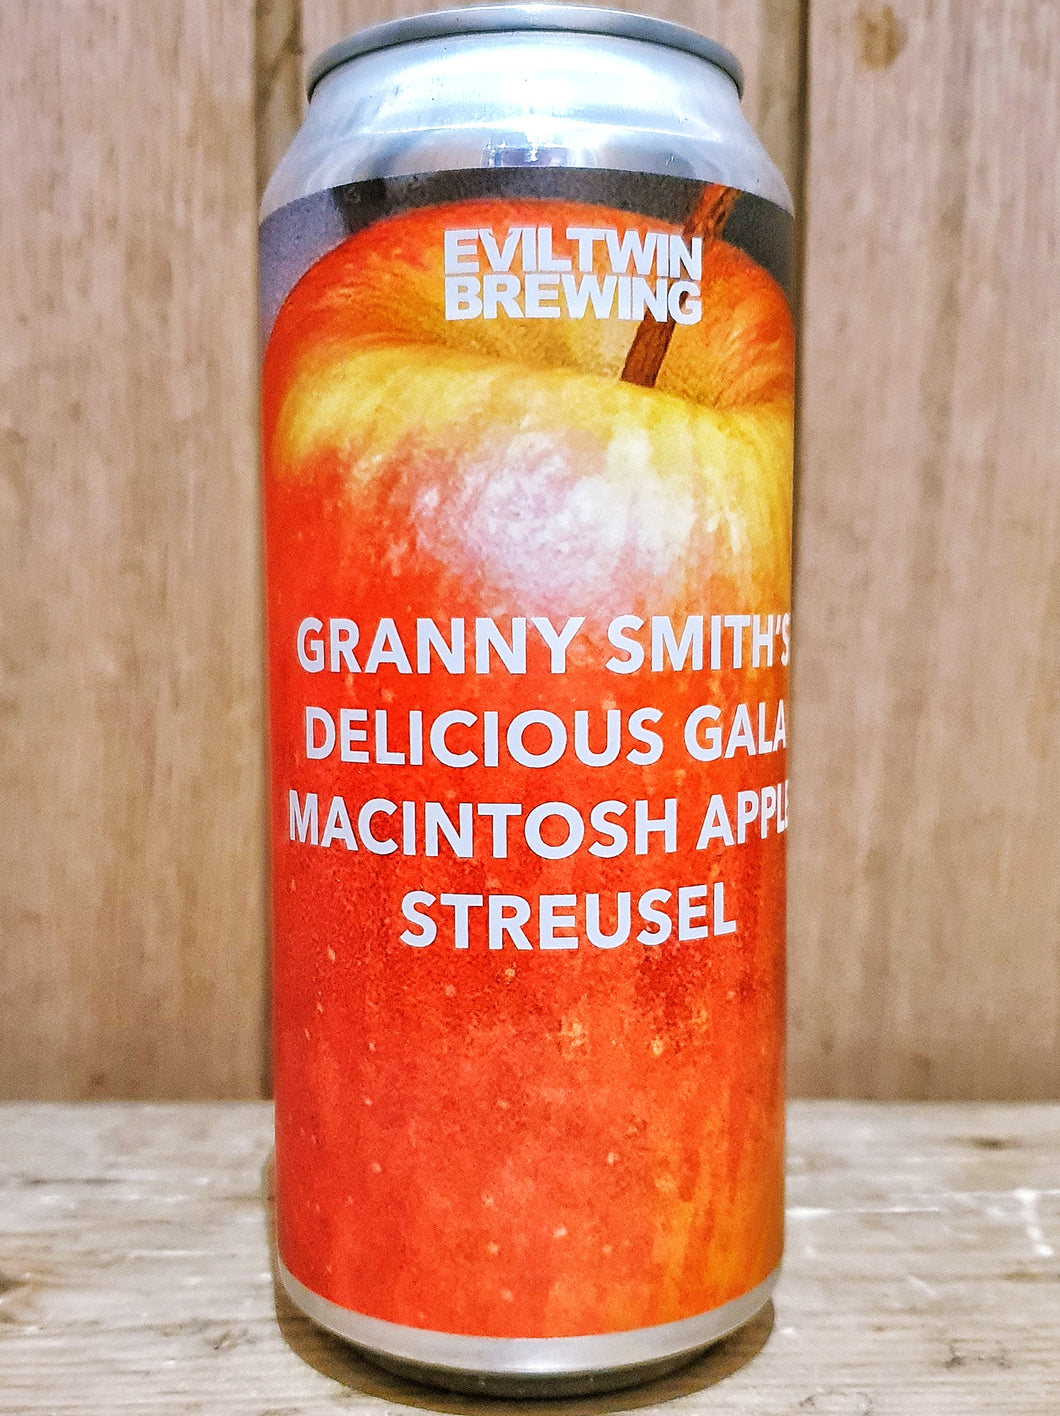 Evil Twin - Granny Smith's Delicious Gala Macintosh Apple Streusel